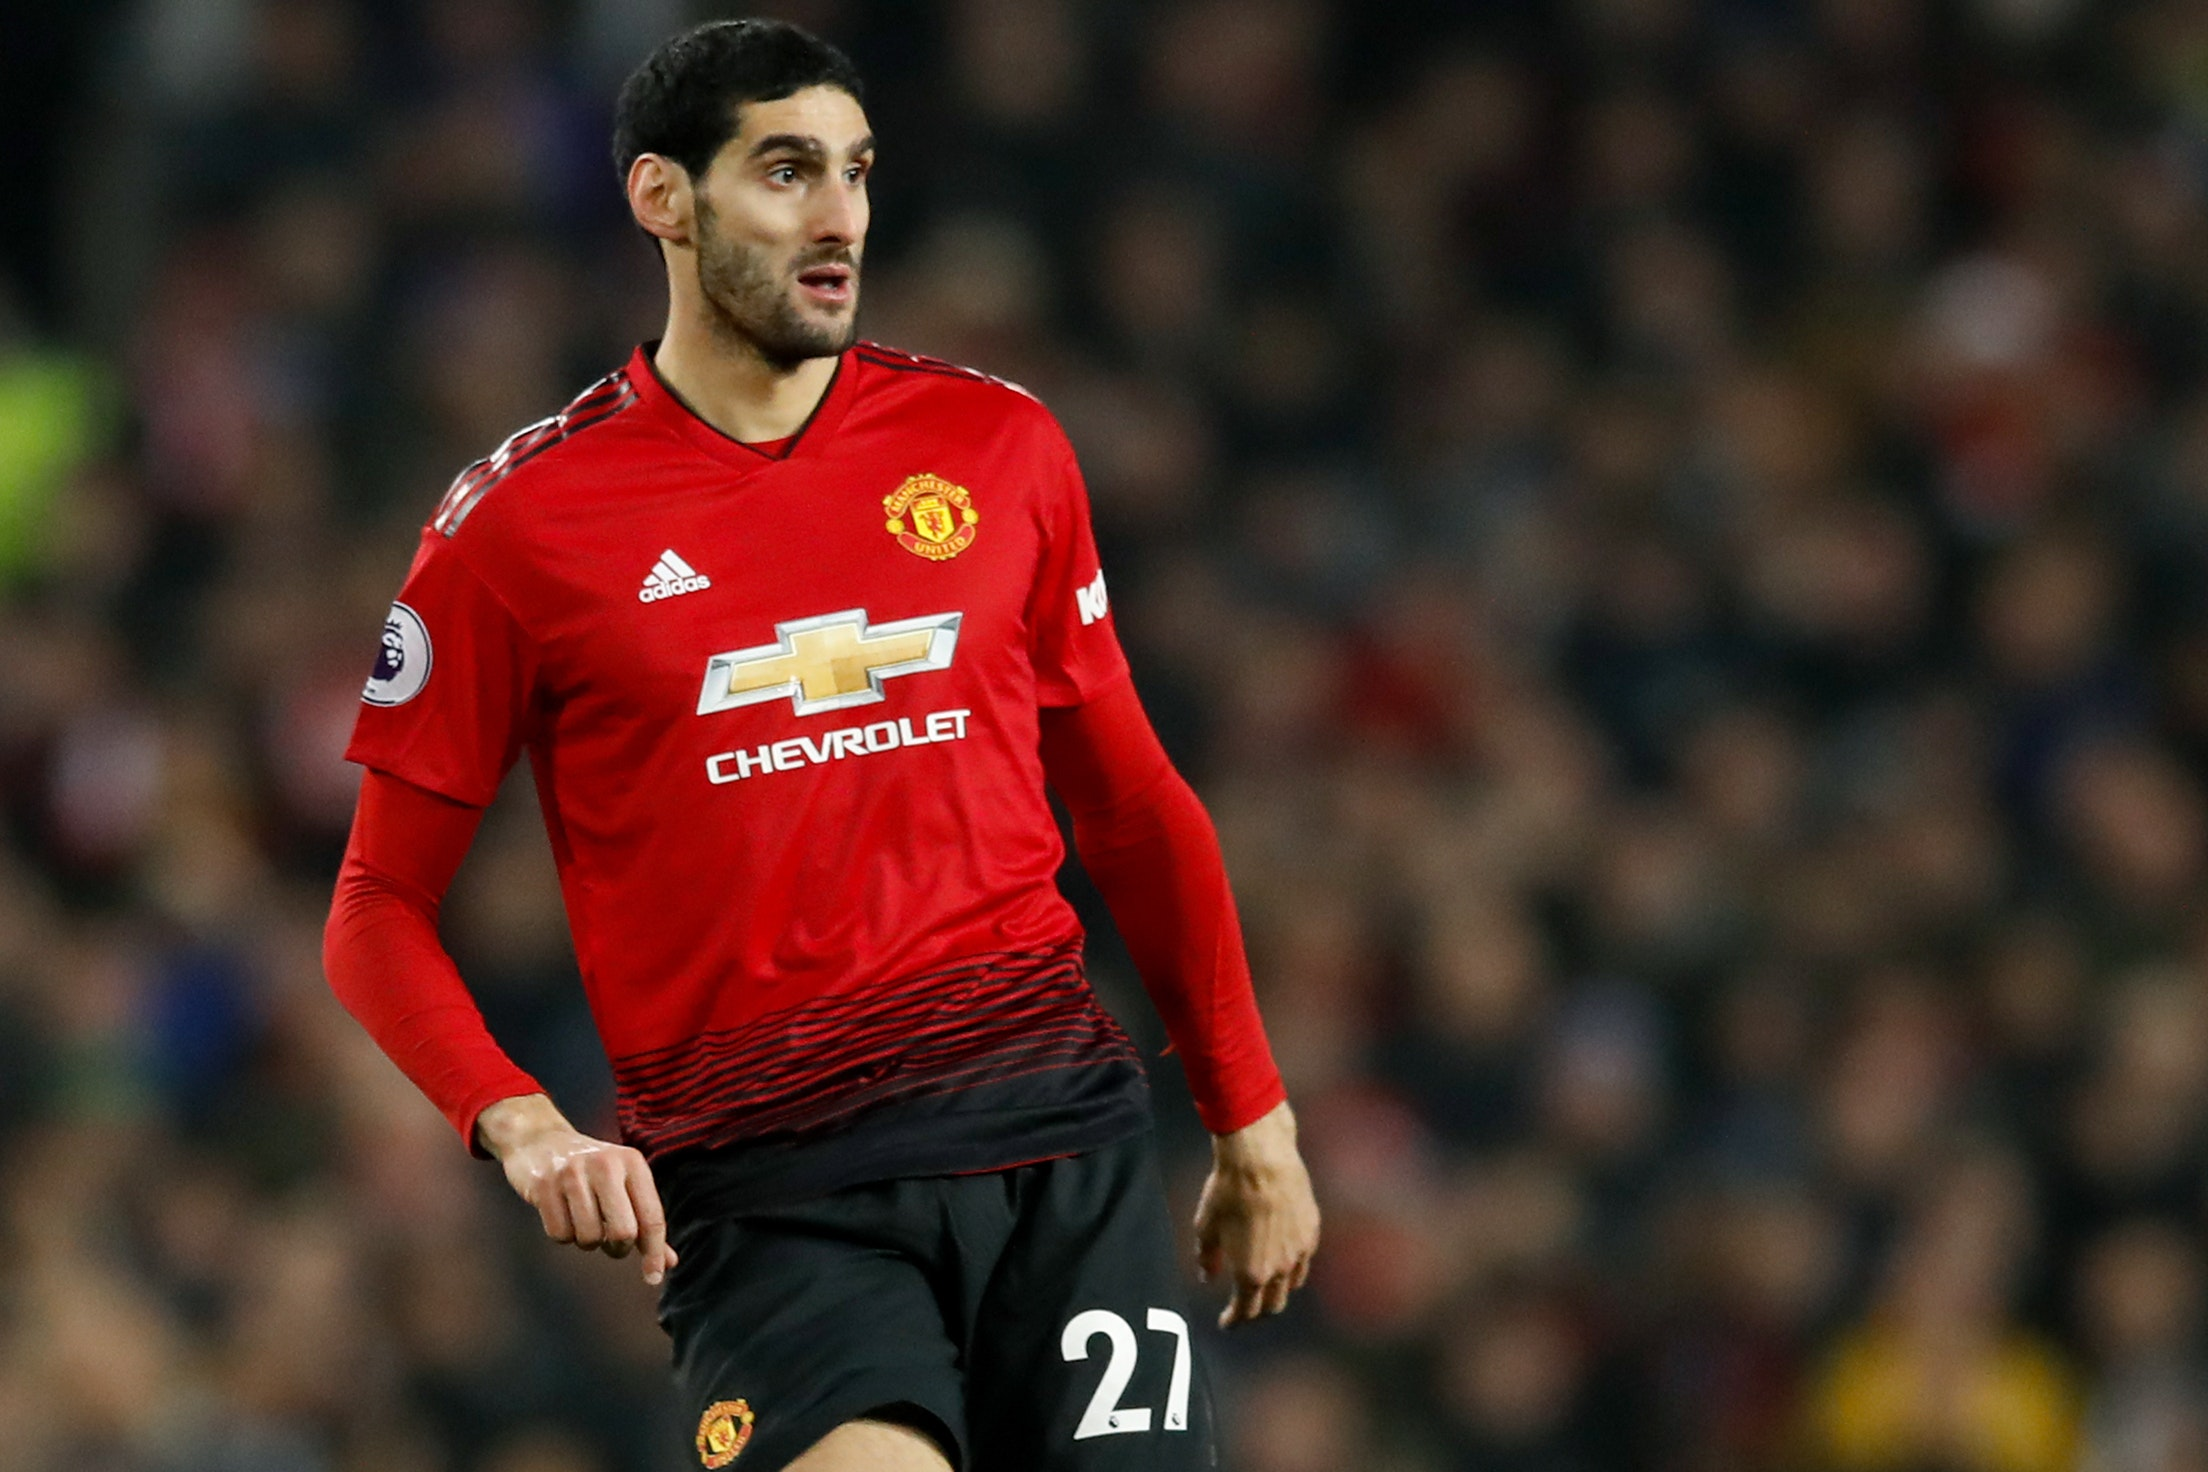 Manchester United's Marouane Fellaini has been ruled out for up to a month